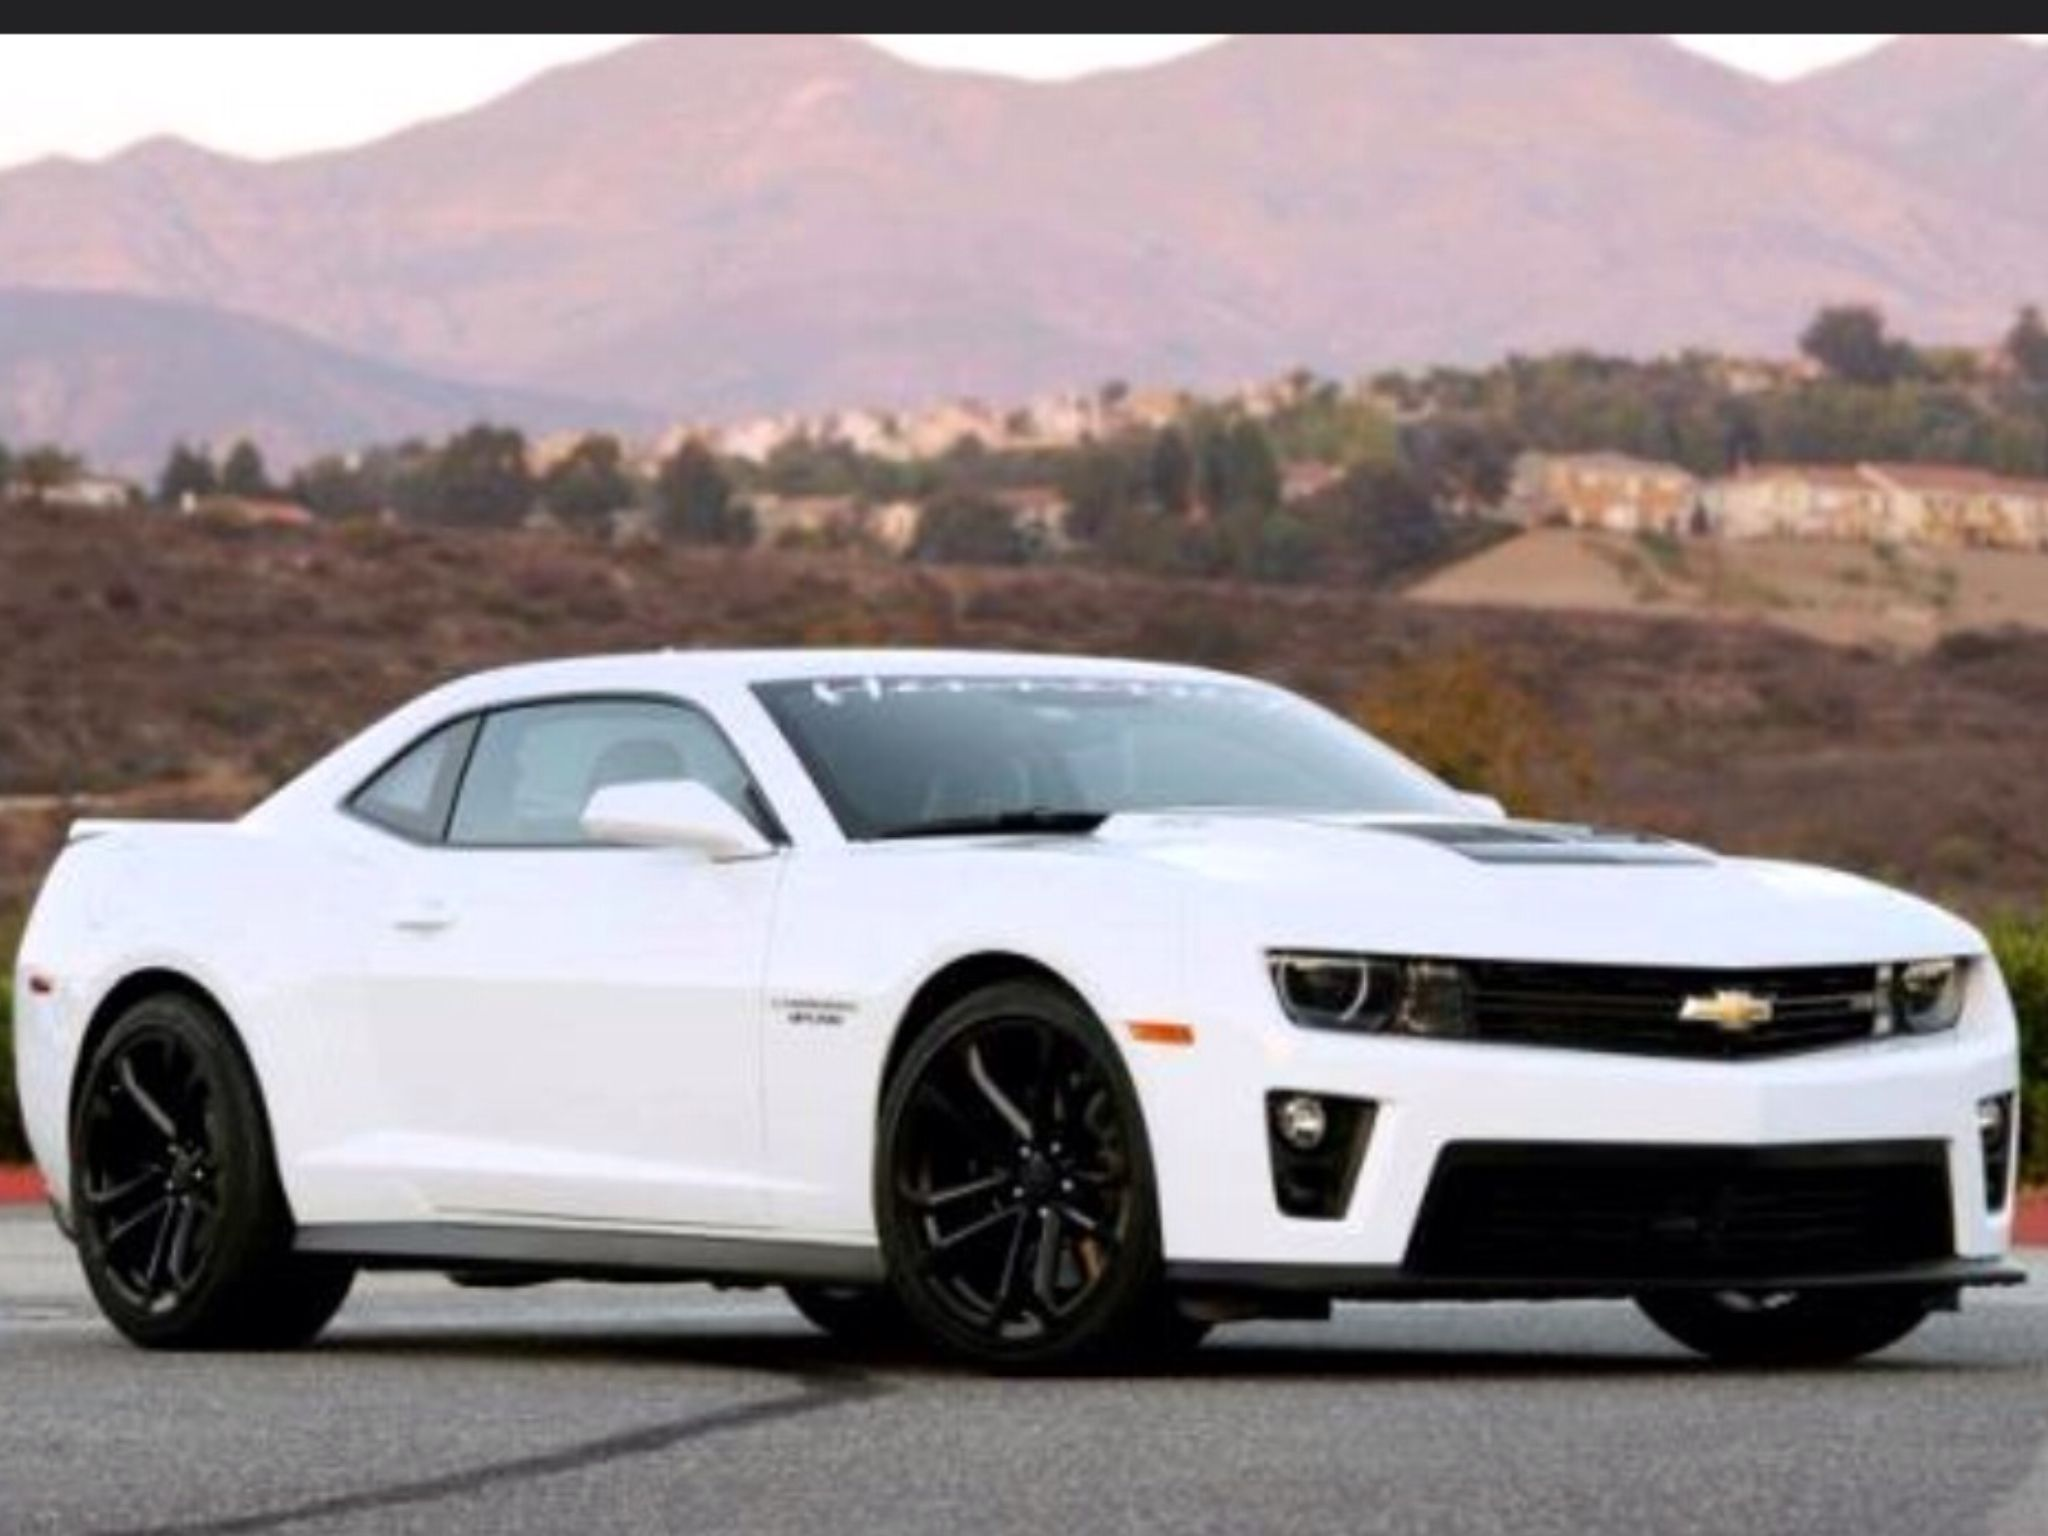 2013 Chevrolet Camaro Zl1 Summit White Dream Garage